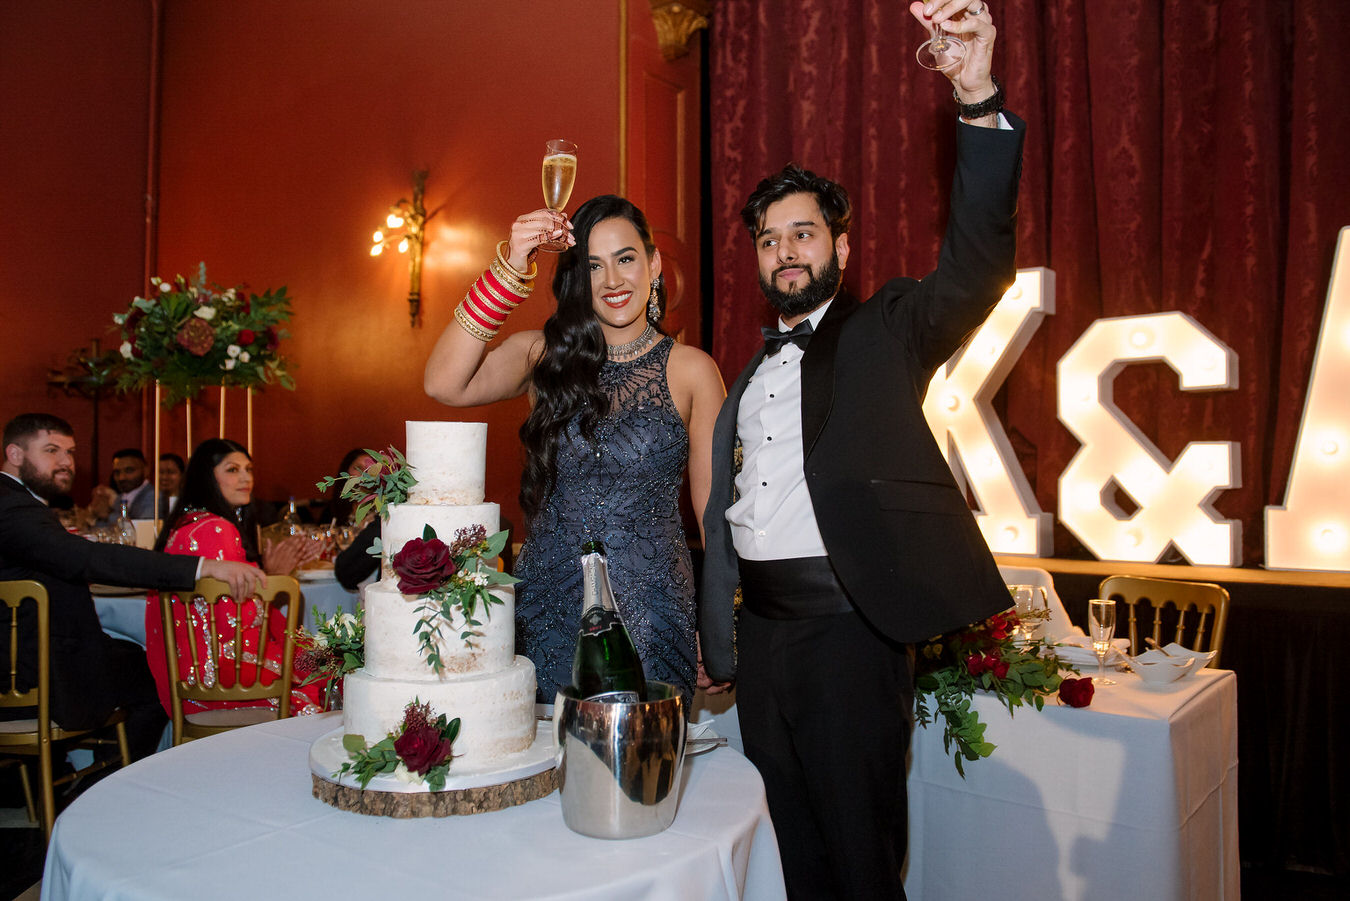 Bride and groom are lifting the glasses up cheering after cutting their wedding cake.